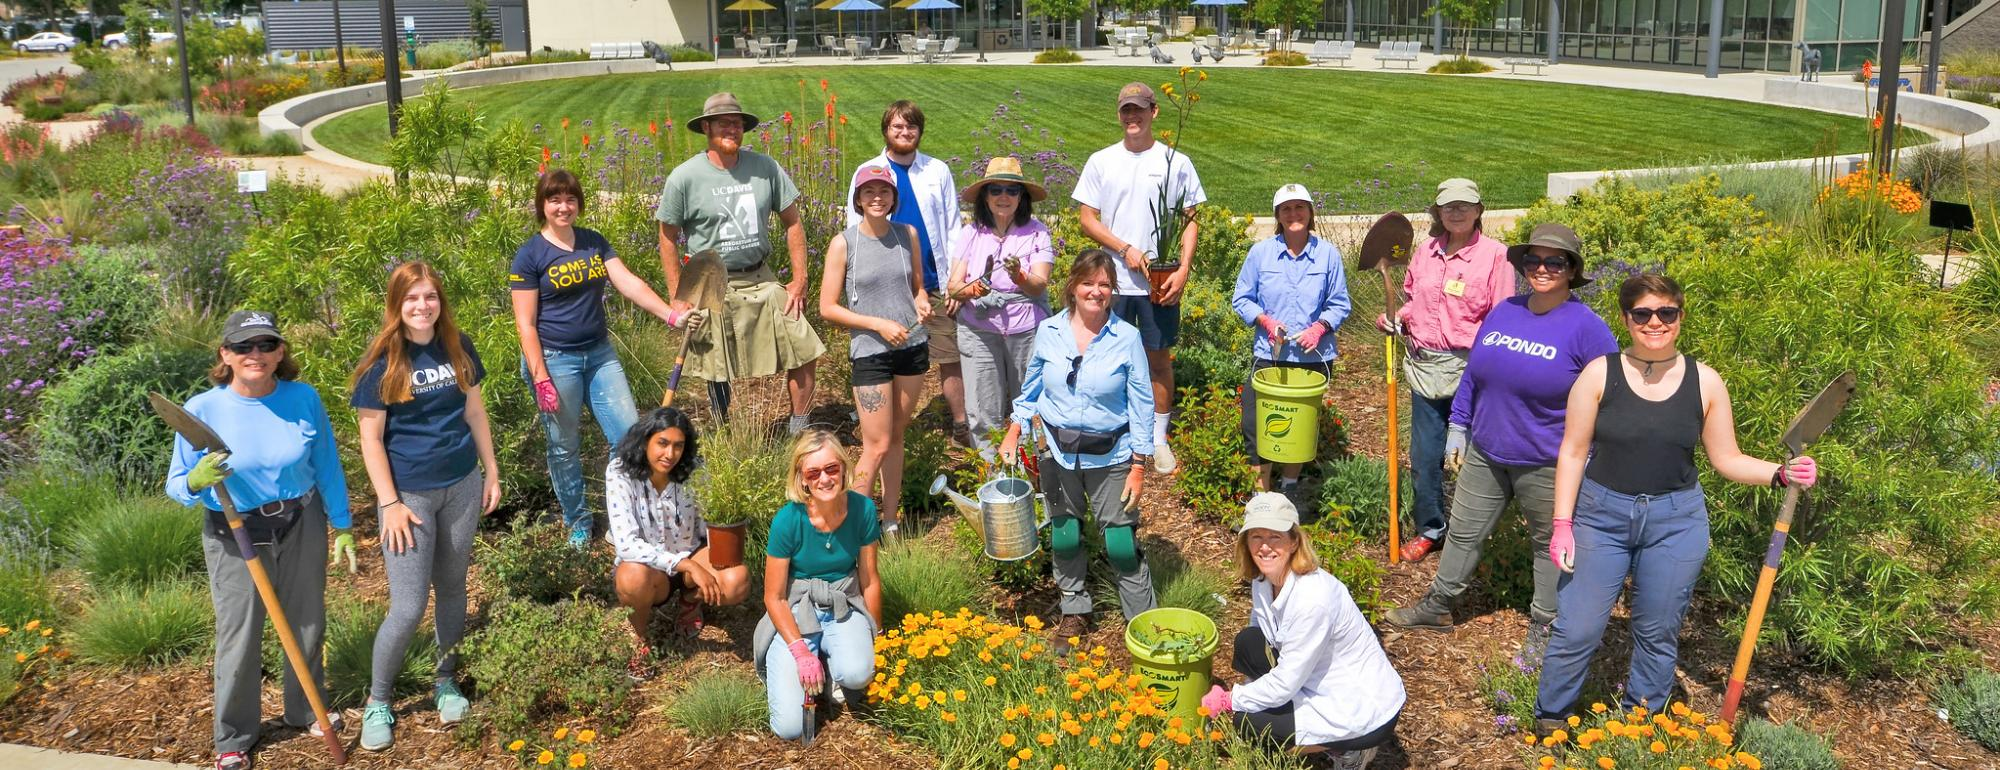 Image of students and volunteers in the Hummingbird GATEway Garden.